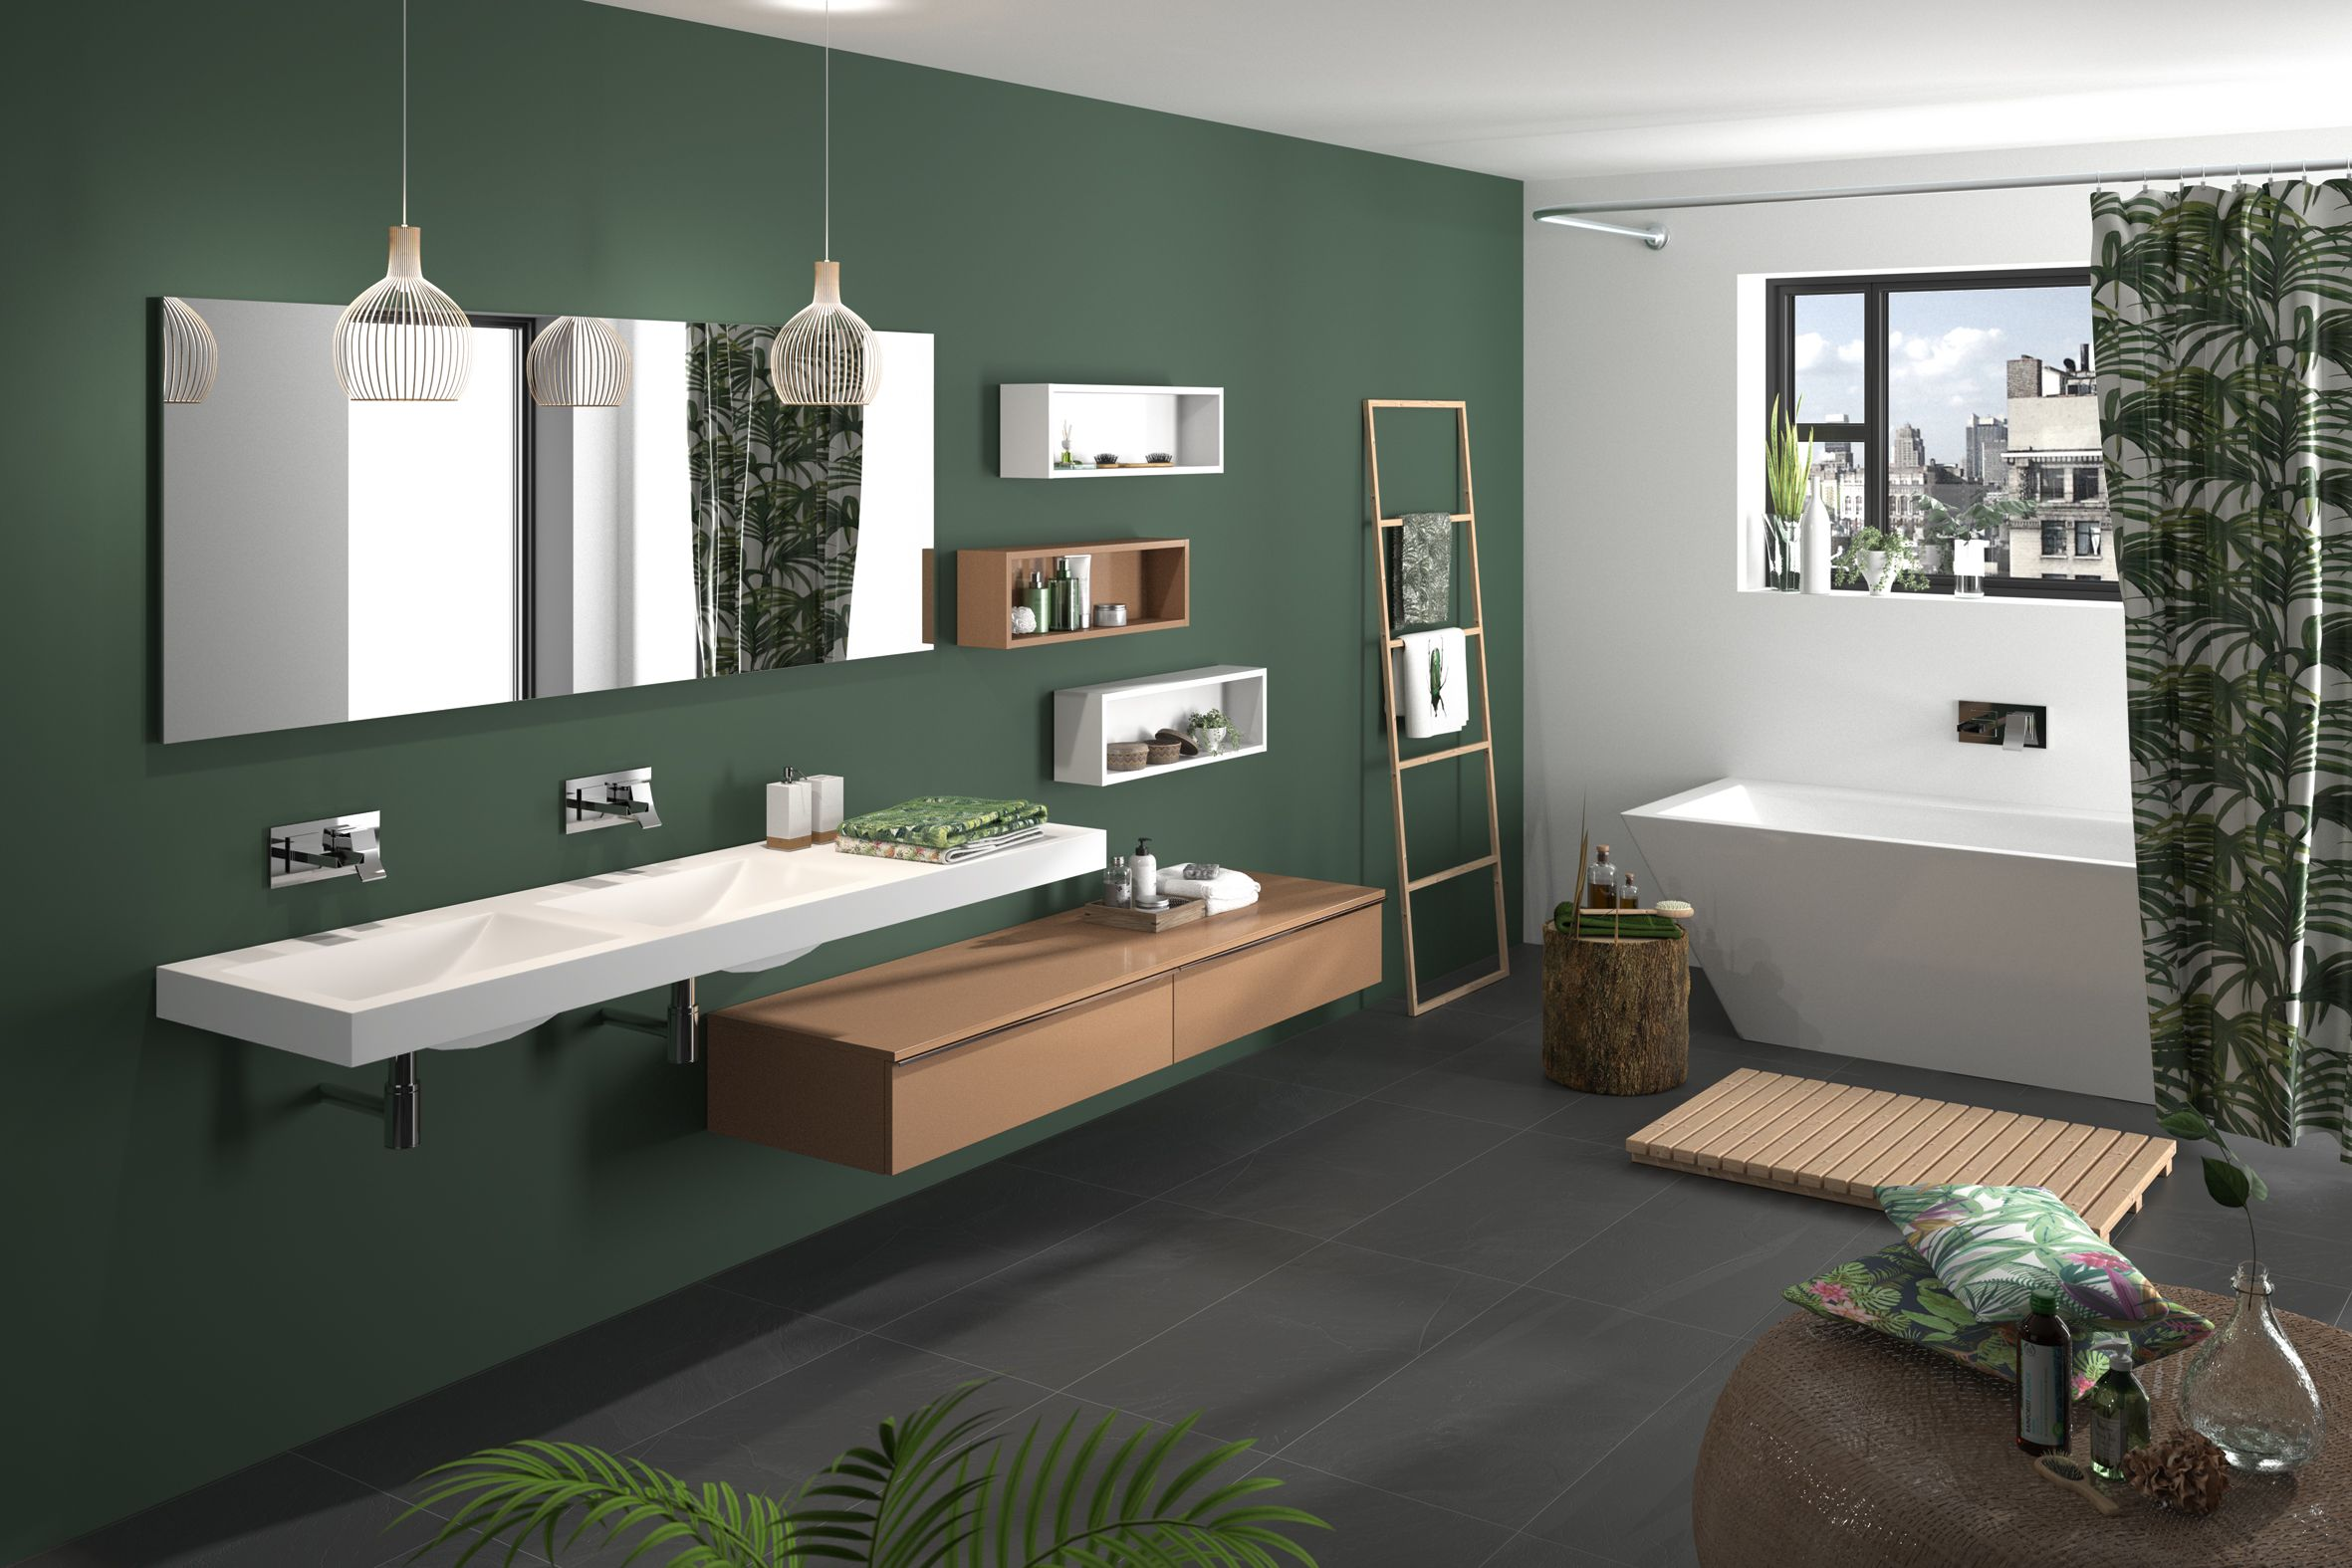 meuble de salle de bain cedam gamme extenso sur mesure double vasque bathroom vert. Black Bedroom Furniture Sets. Home Design Ideas